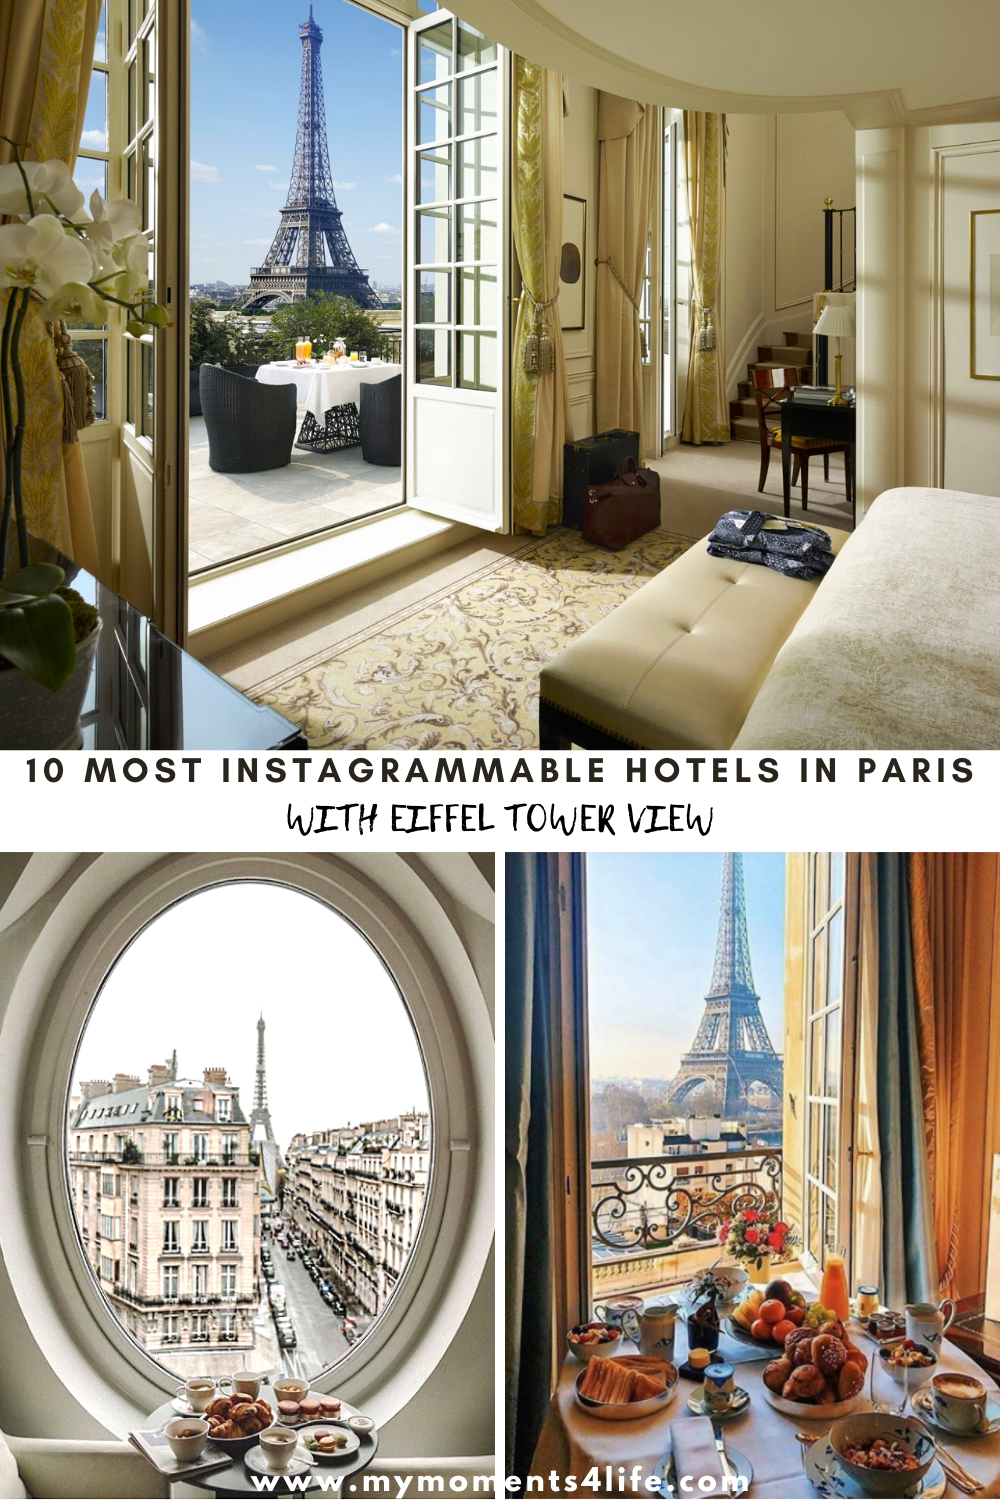 Instagrammable Hotels in Paris with Eiffel Tower view